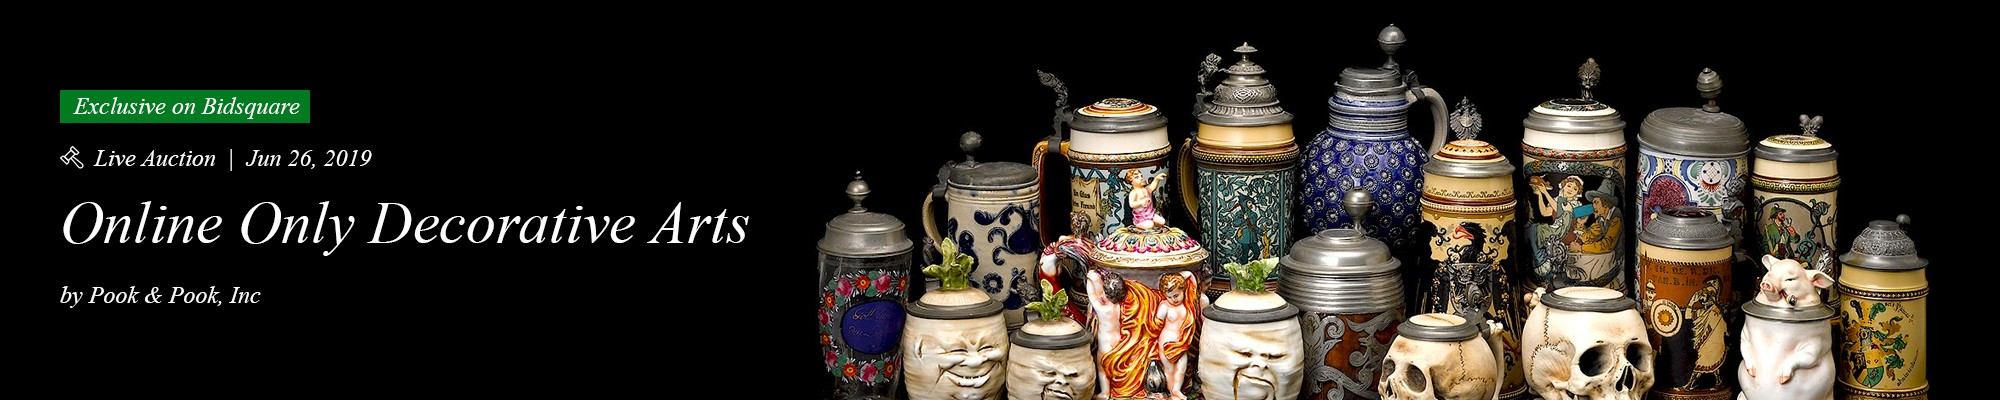 online-only-decorative-arts-pook